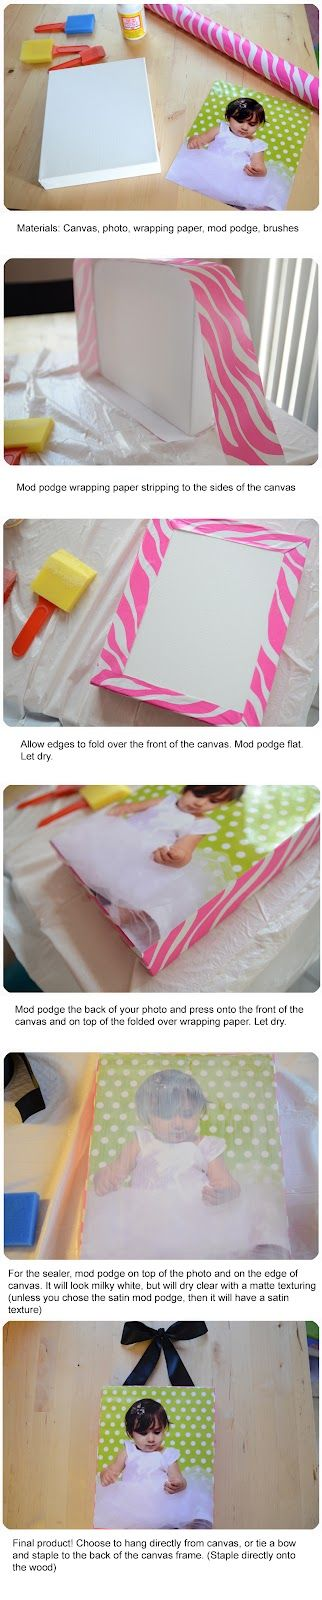 DIY Canvas Photo - Will be trying this!